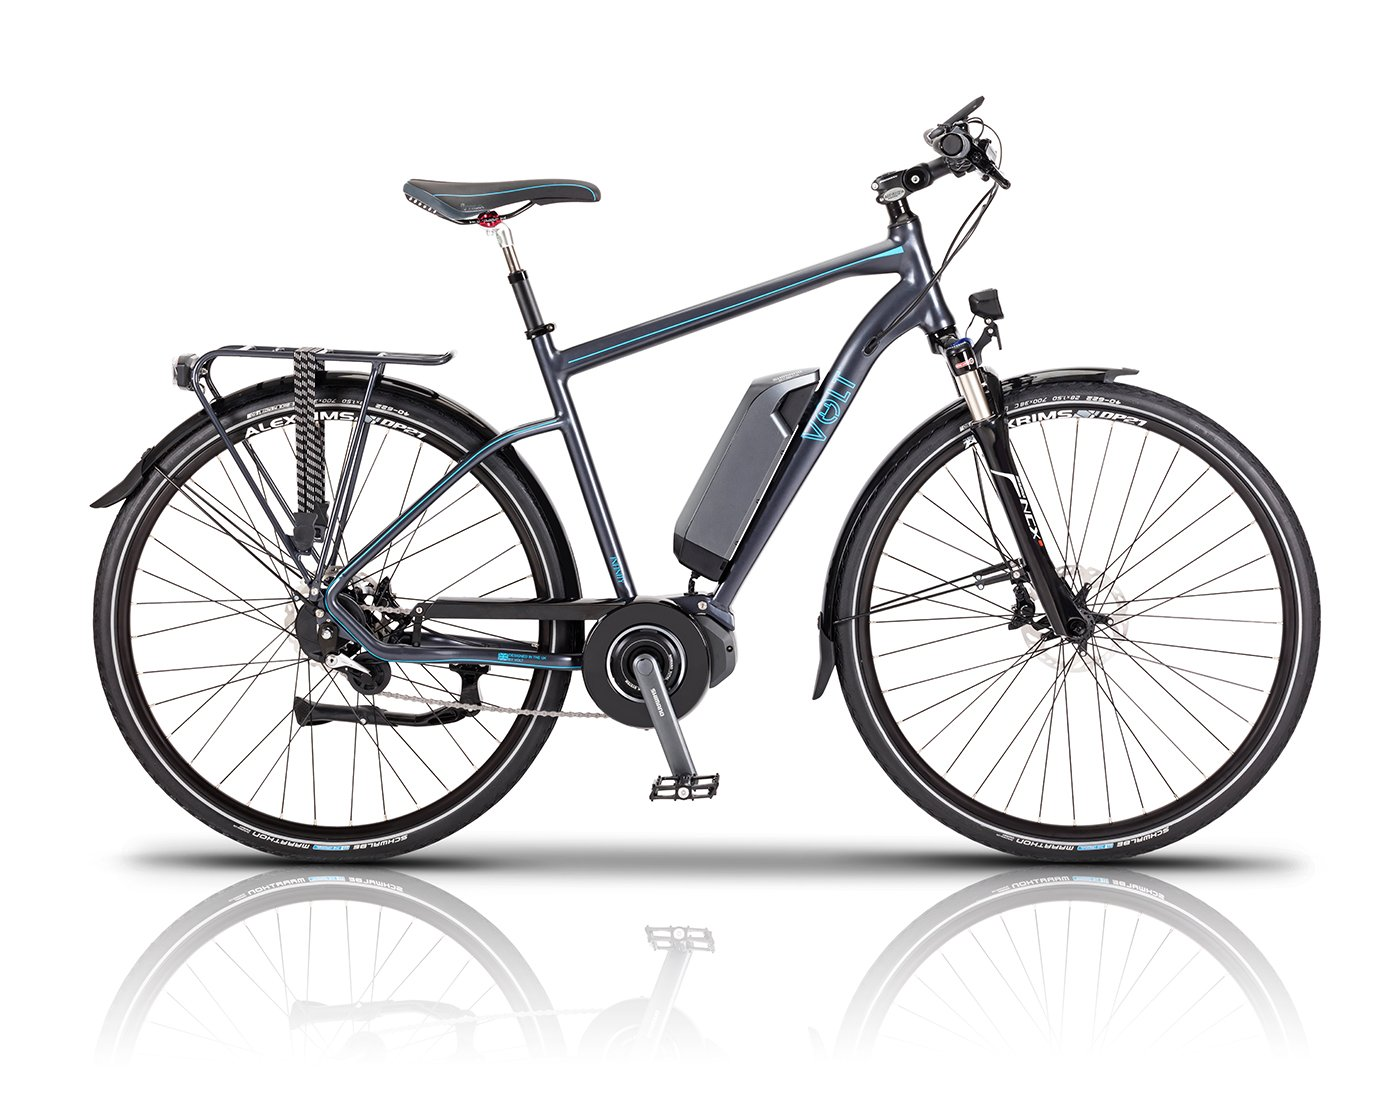   Road and Mountain Bike Reviews